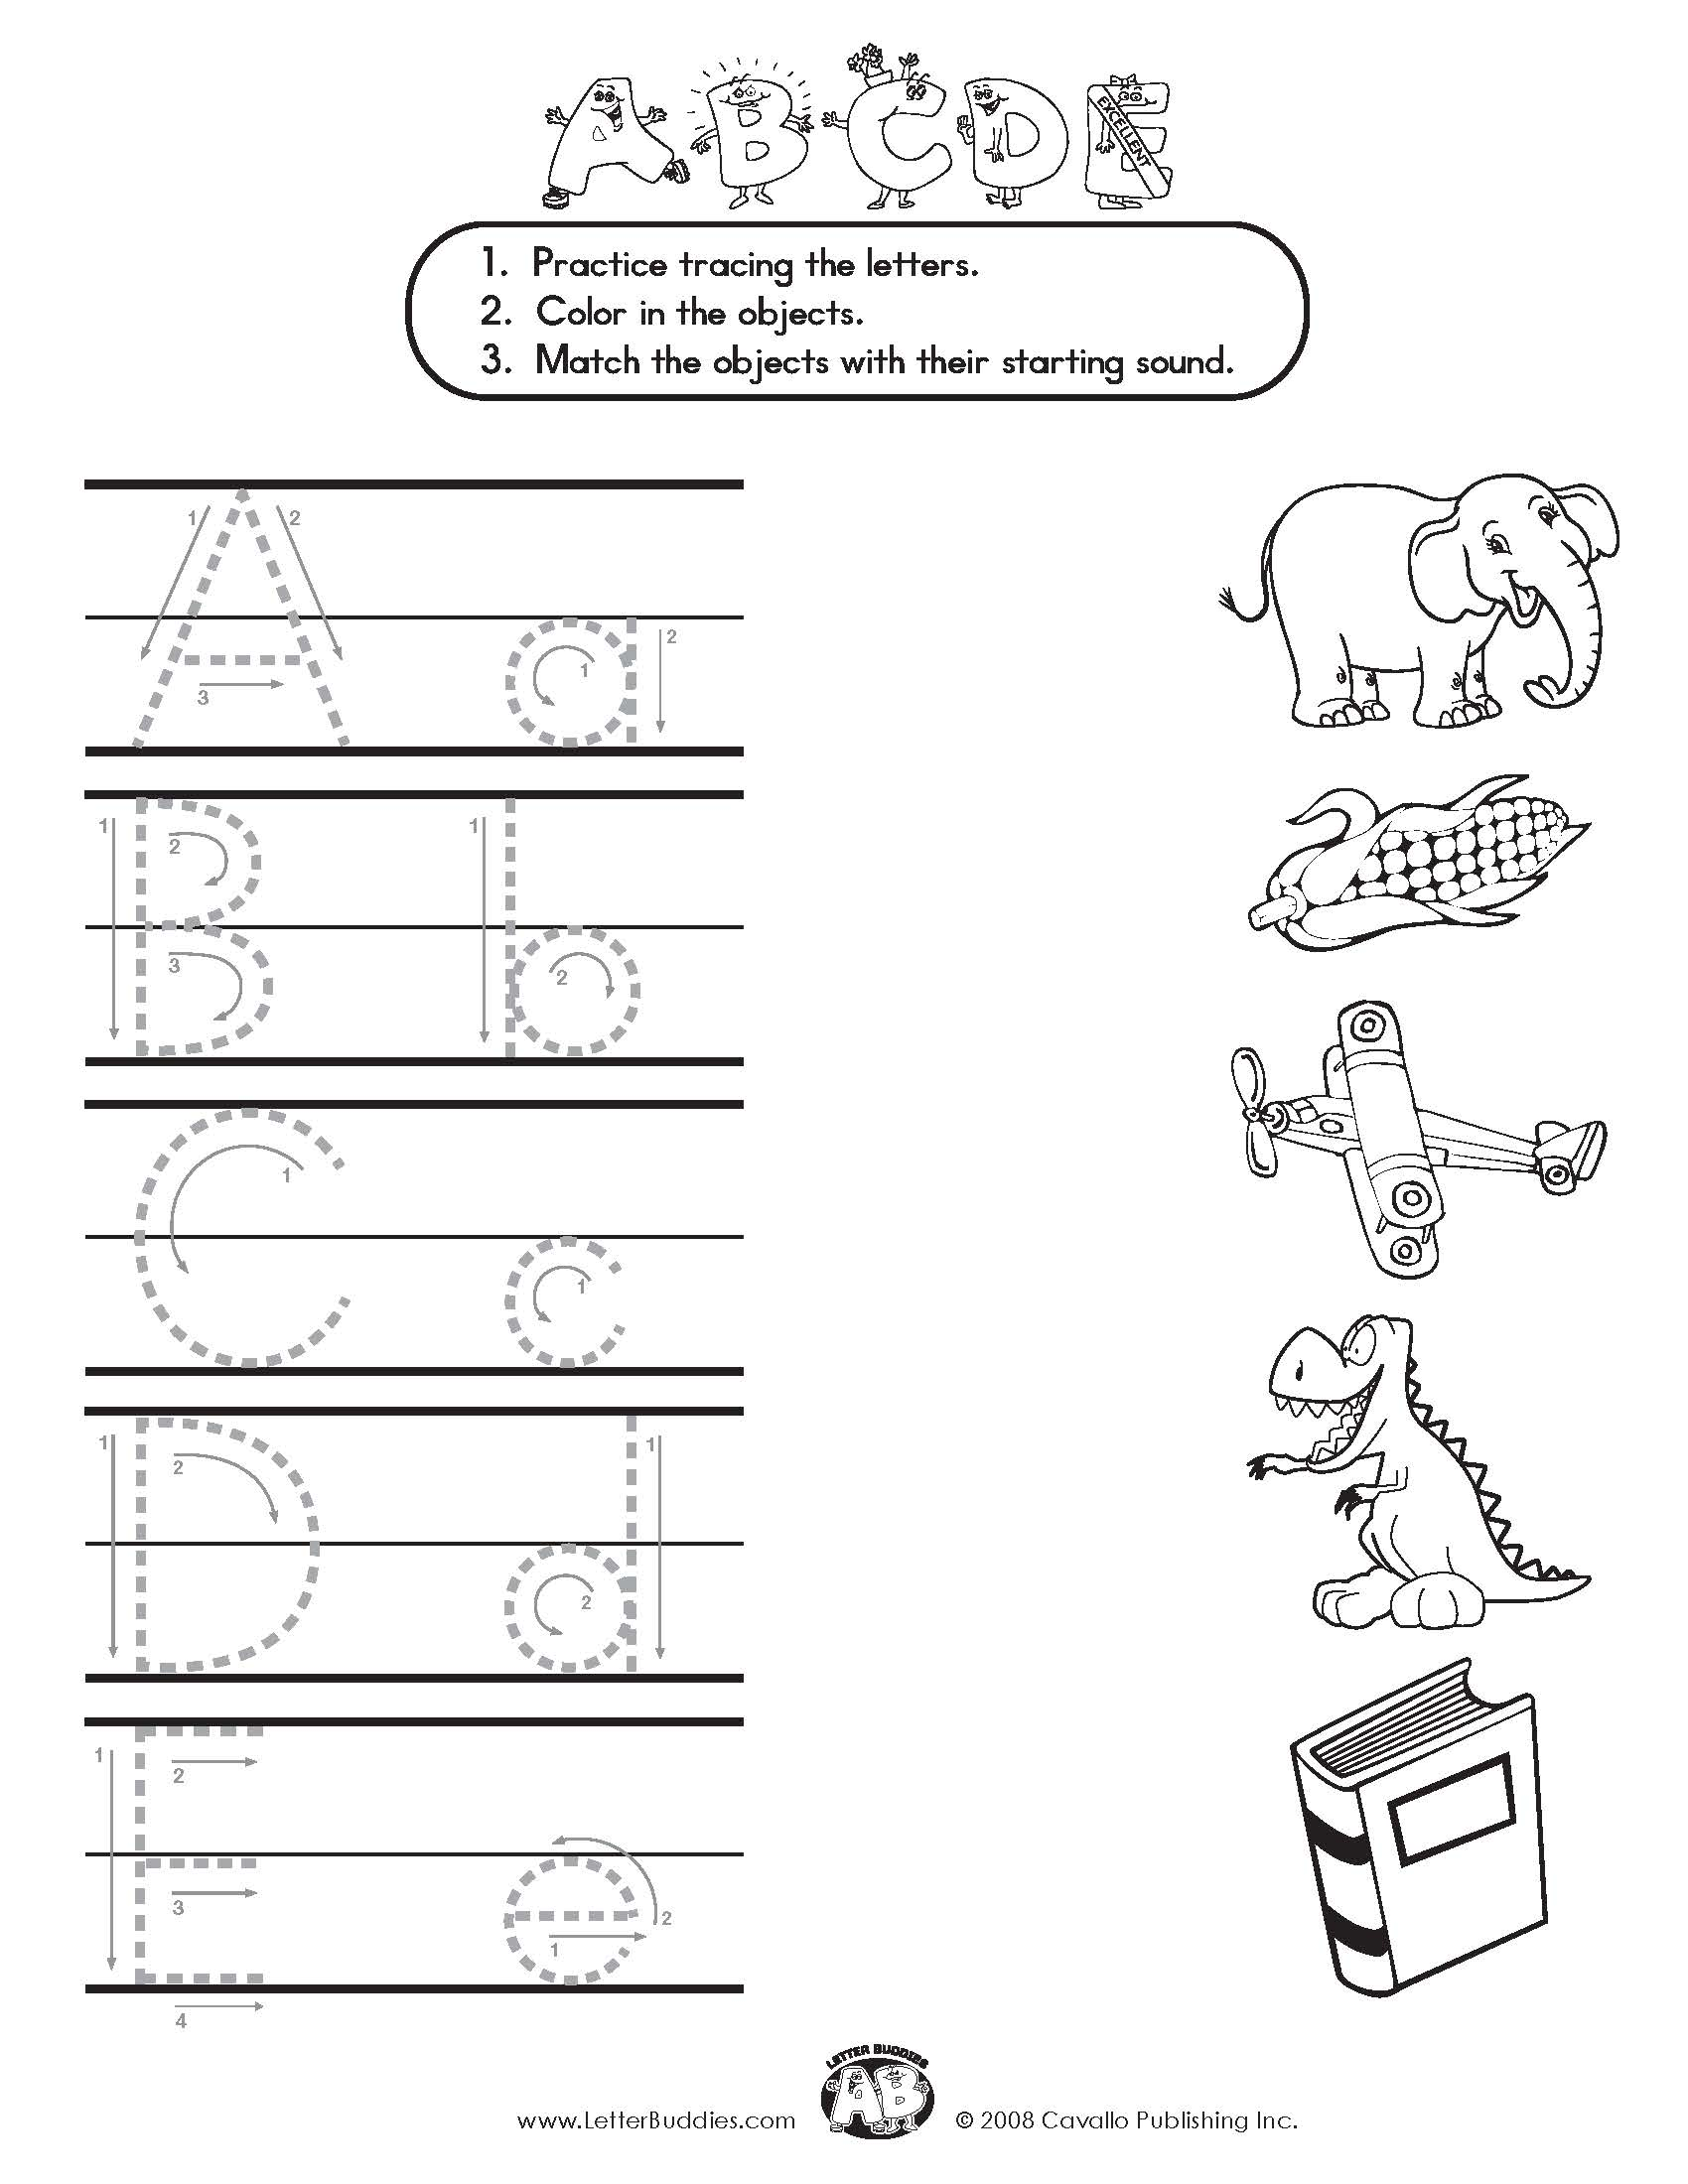 Worksheets Letter Formation Worksheets download main page part 5 letter buddies matching worksheet a e